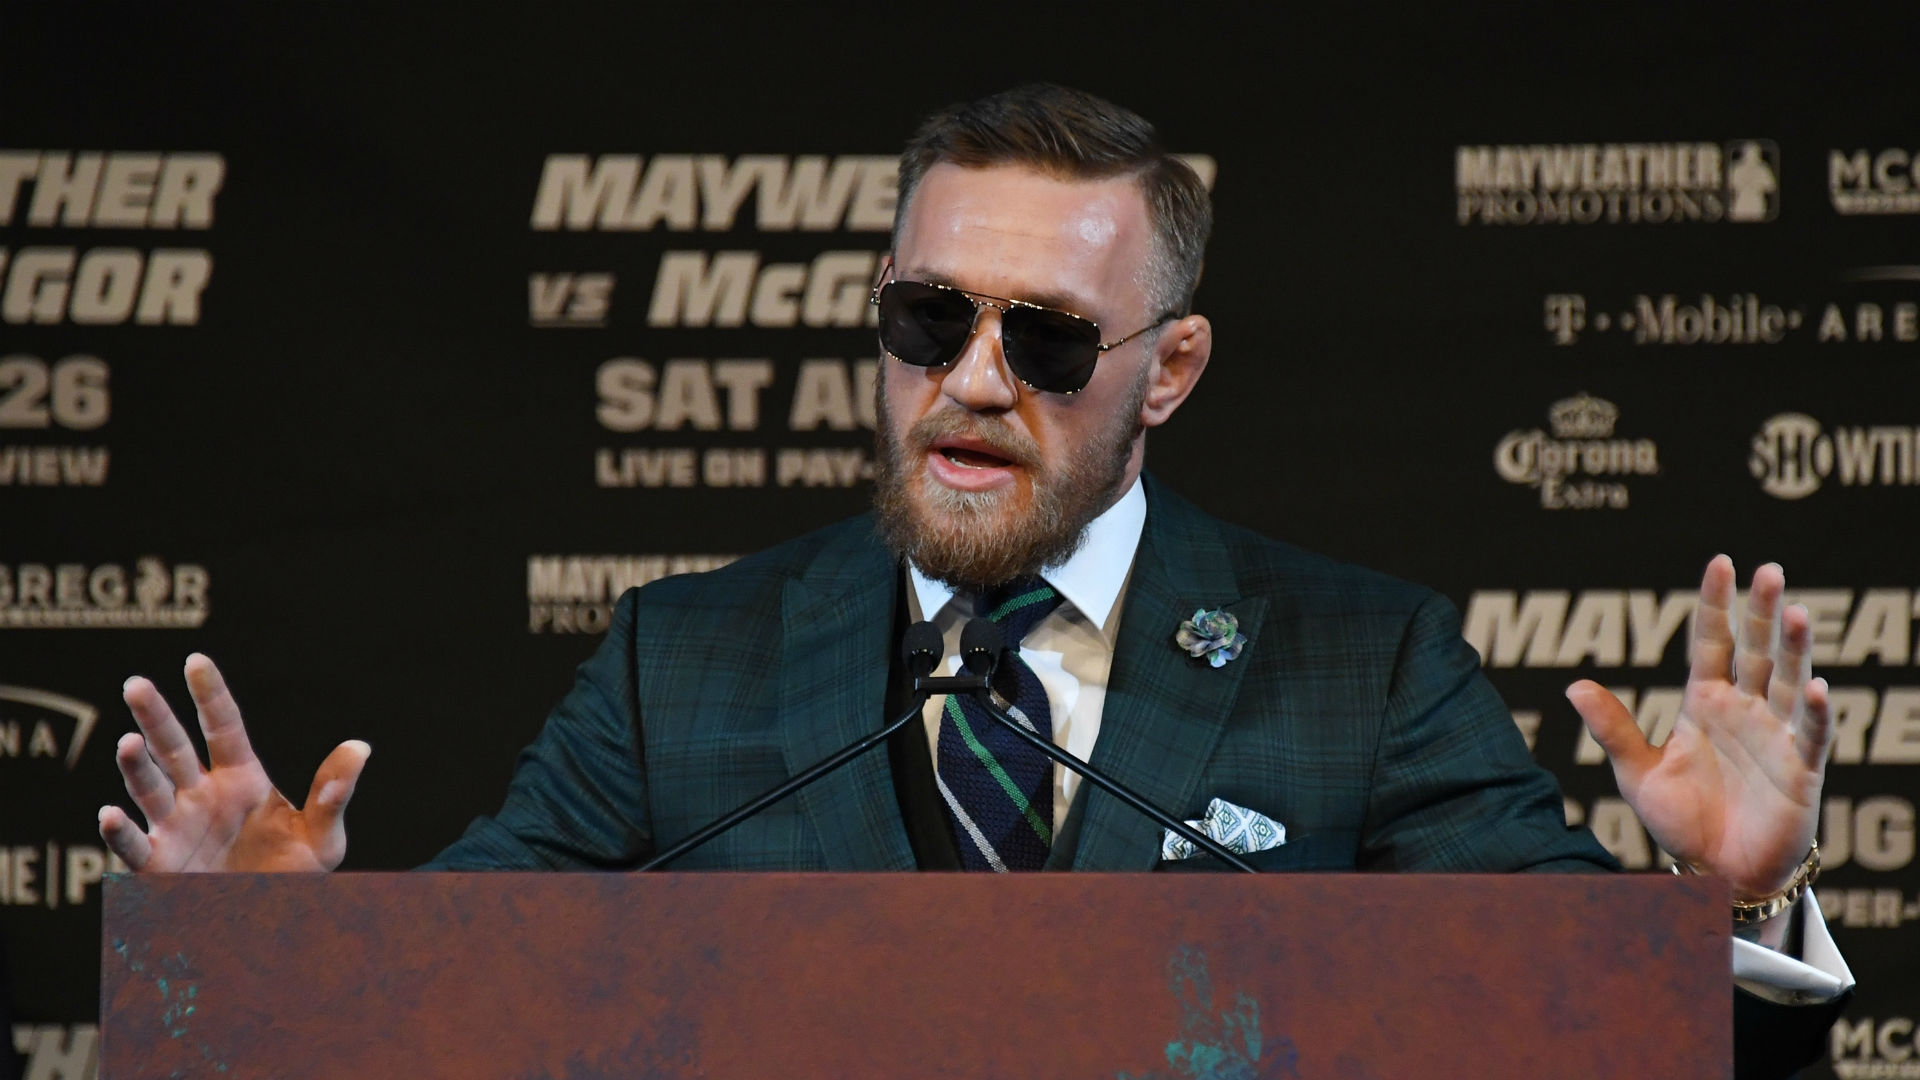 NYSAC director likens Conor McGregor case to notorious cult leader Charles Manson